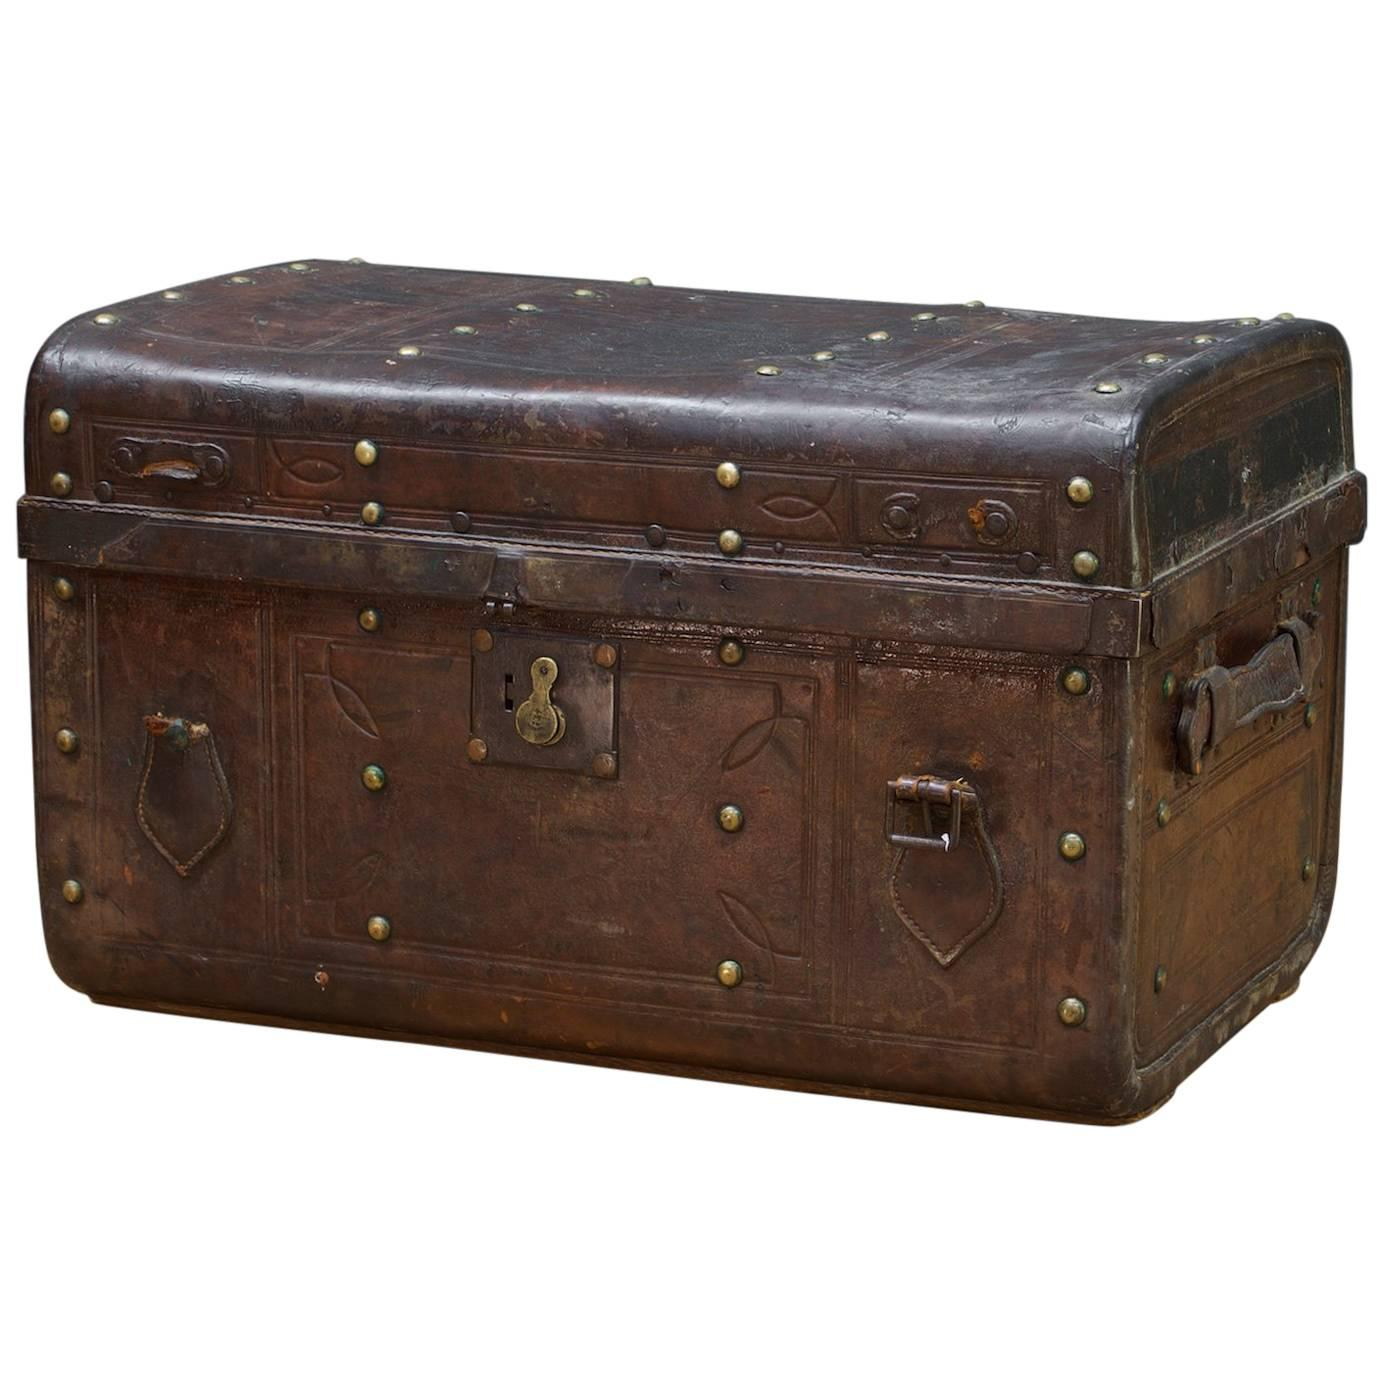 Vintage Ratrod Leather Rumble Box Trunk Steamer Luggage Model T Ford Rolls Royce